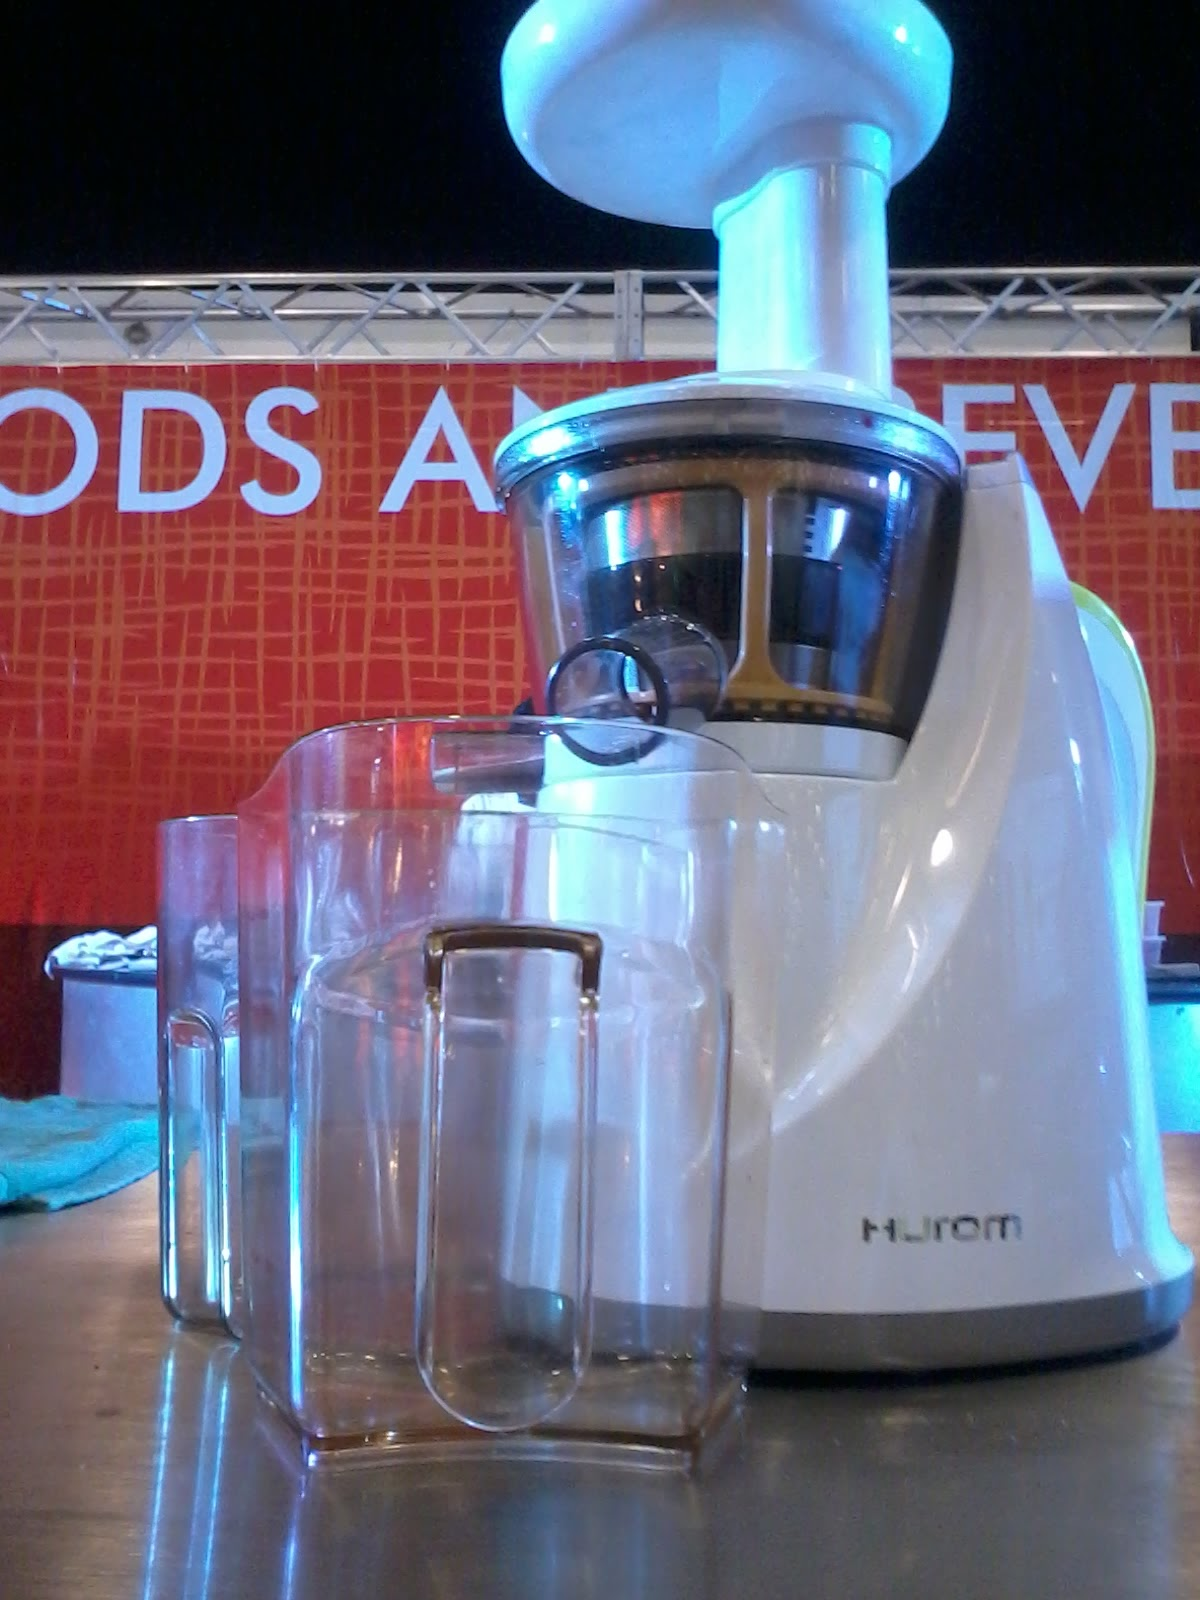 HUROM SLOW JUICER DEMO BY CHEF KEL ZAGUIRRE AT THE MAFBEX 2012 Security Blanket